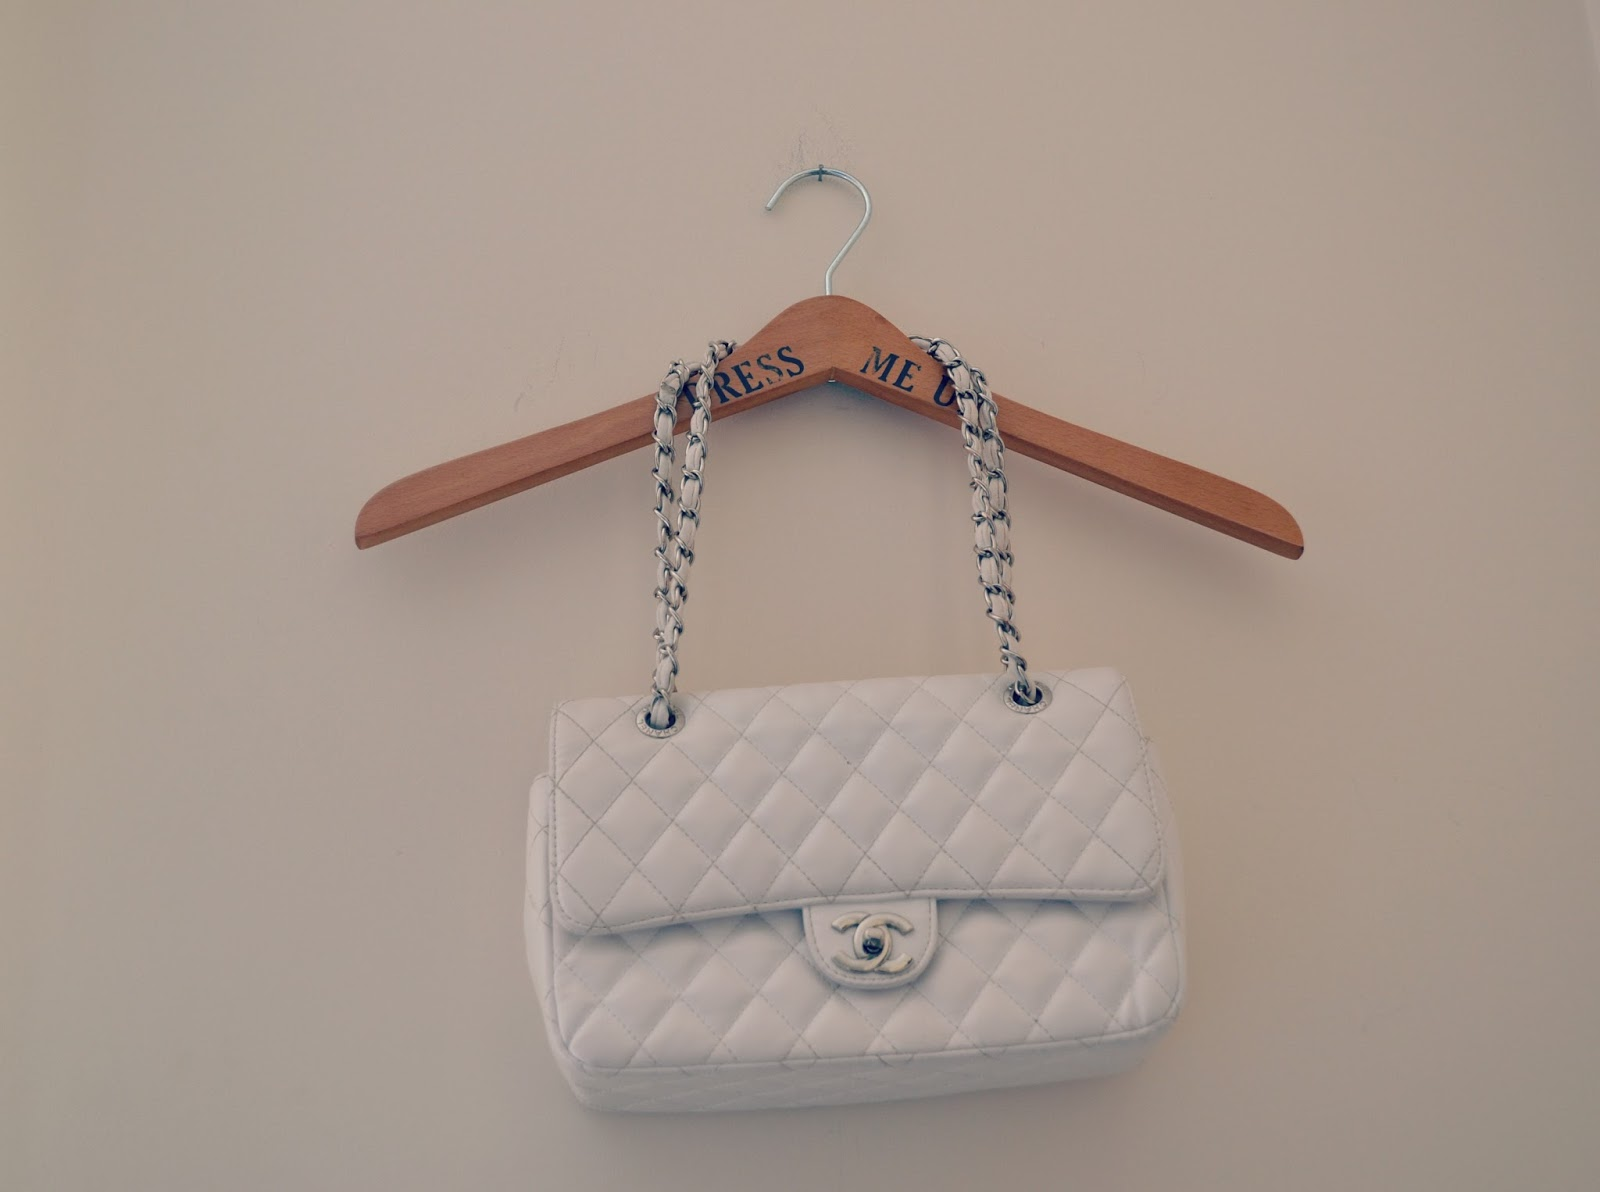 chanel chain strap 2.55 handbag white quilted cc